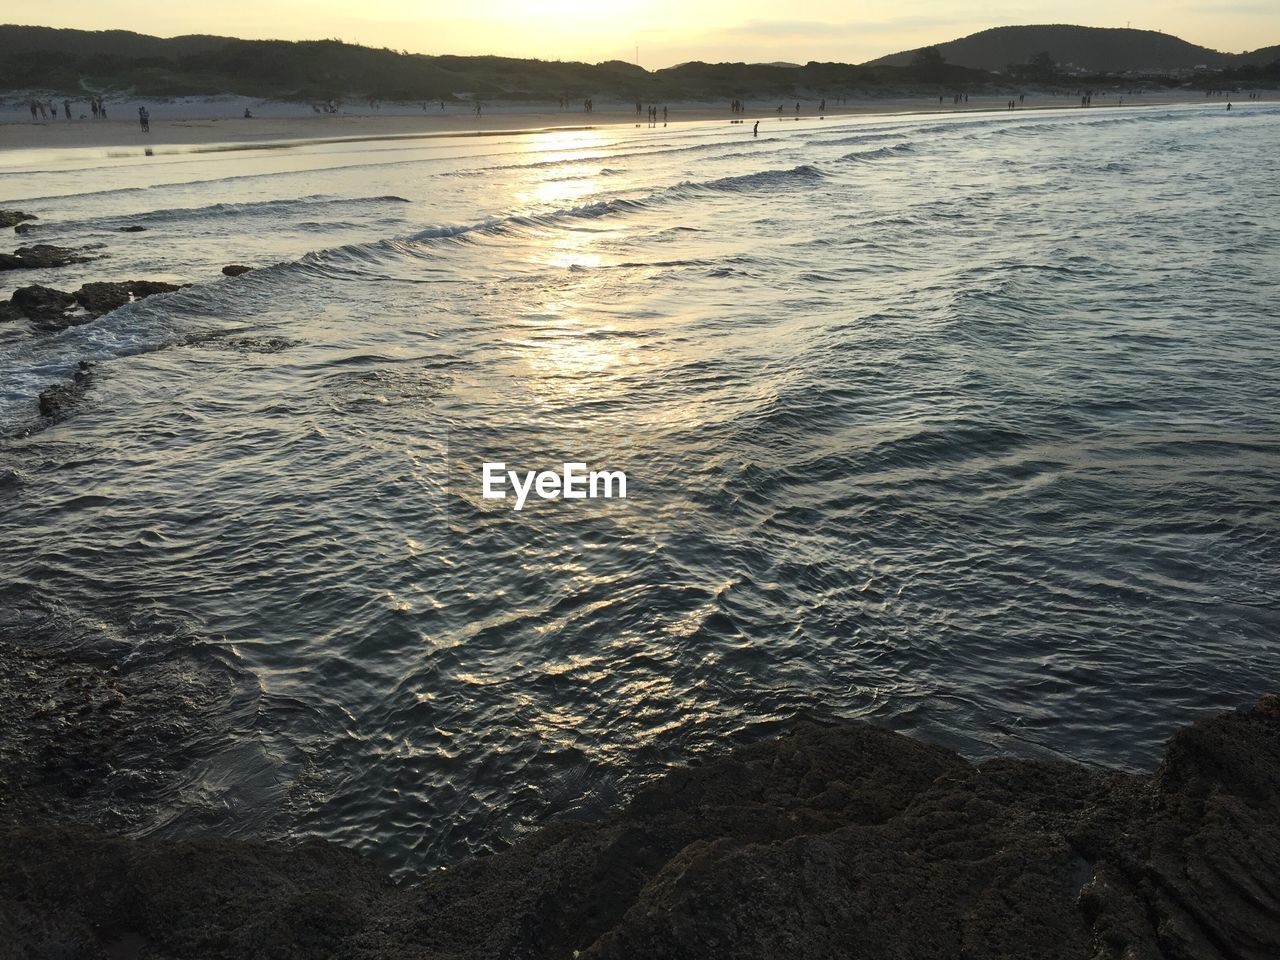 water, nature, sea, tranquility, outdoors, scenics, rippled, beauty in nature, tranquil scene, no people, sunset, mountain, day, sky